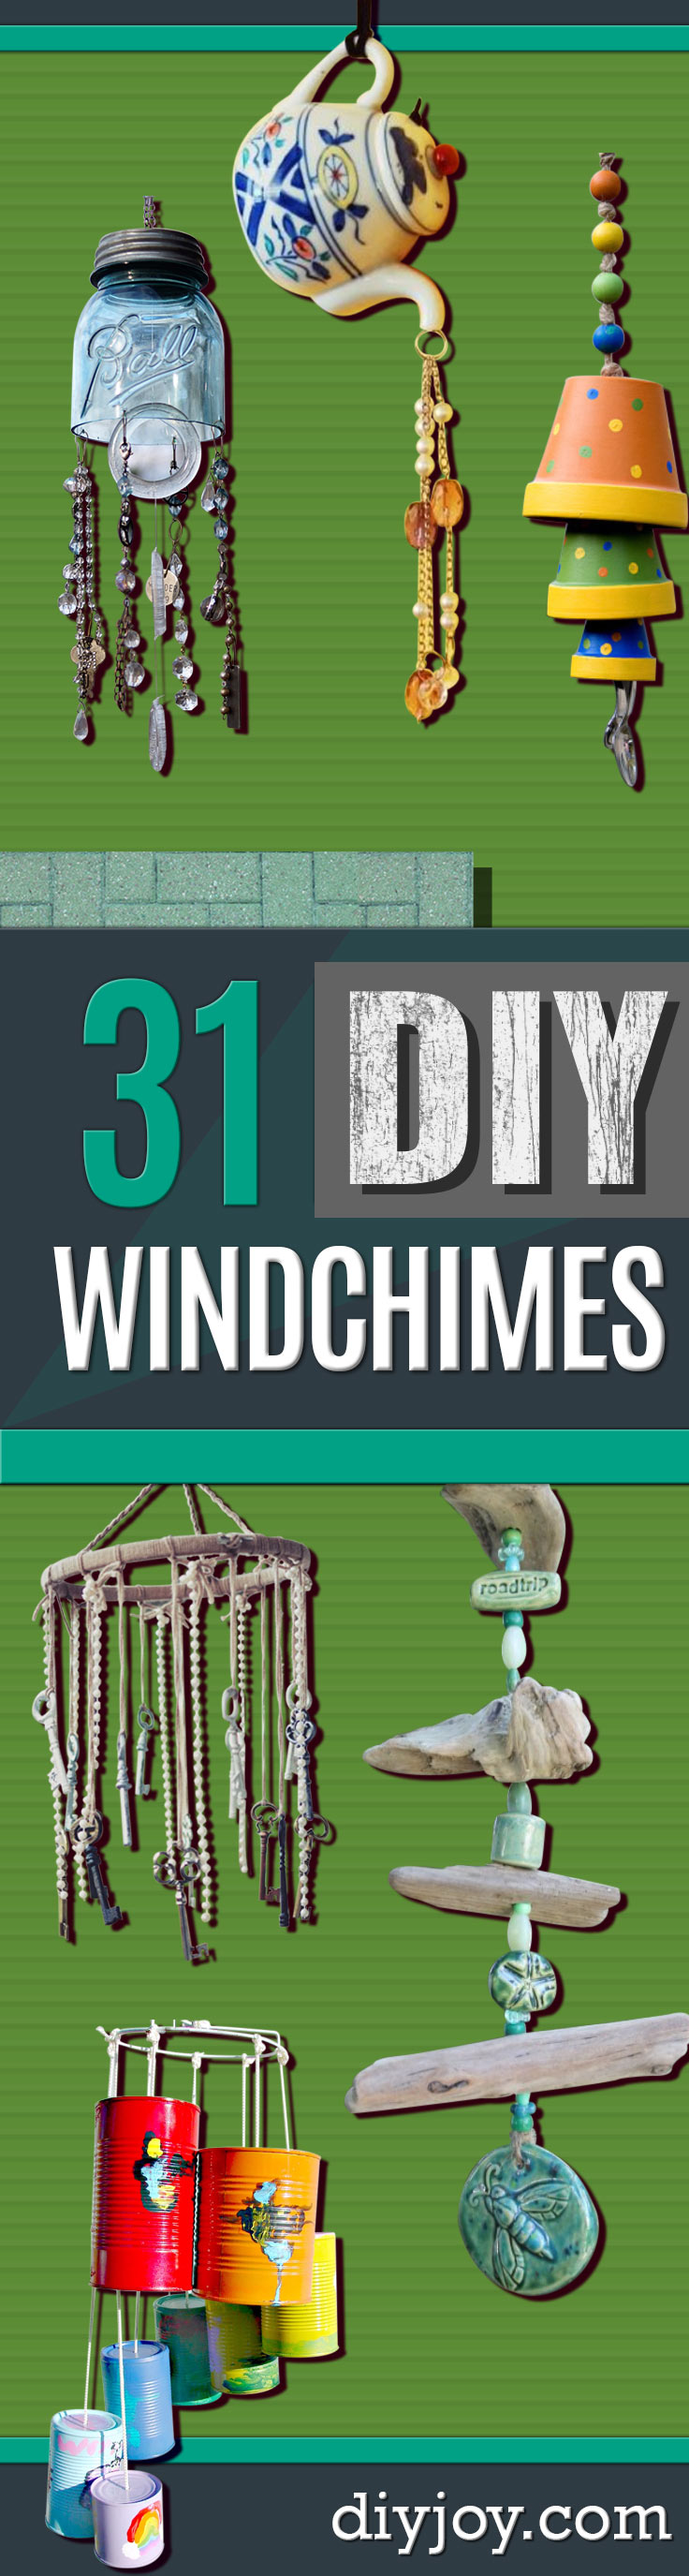 DIY Wind Chimes - Easy, Creative and Cool Windchimes Made from Wooden Beads, Pipes, Rustic Boho and Repurposed Items, Silverware, Seashells and More. Step by Step Tutorials and Instructions